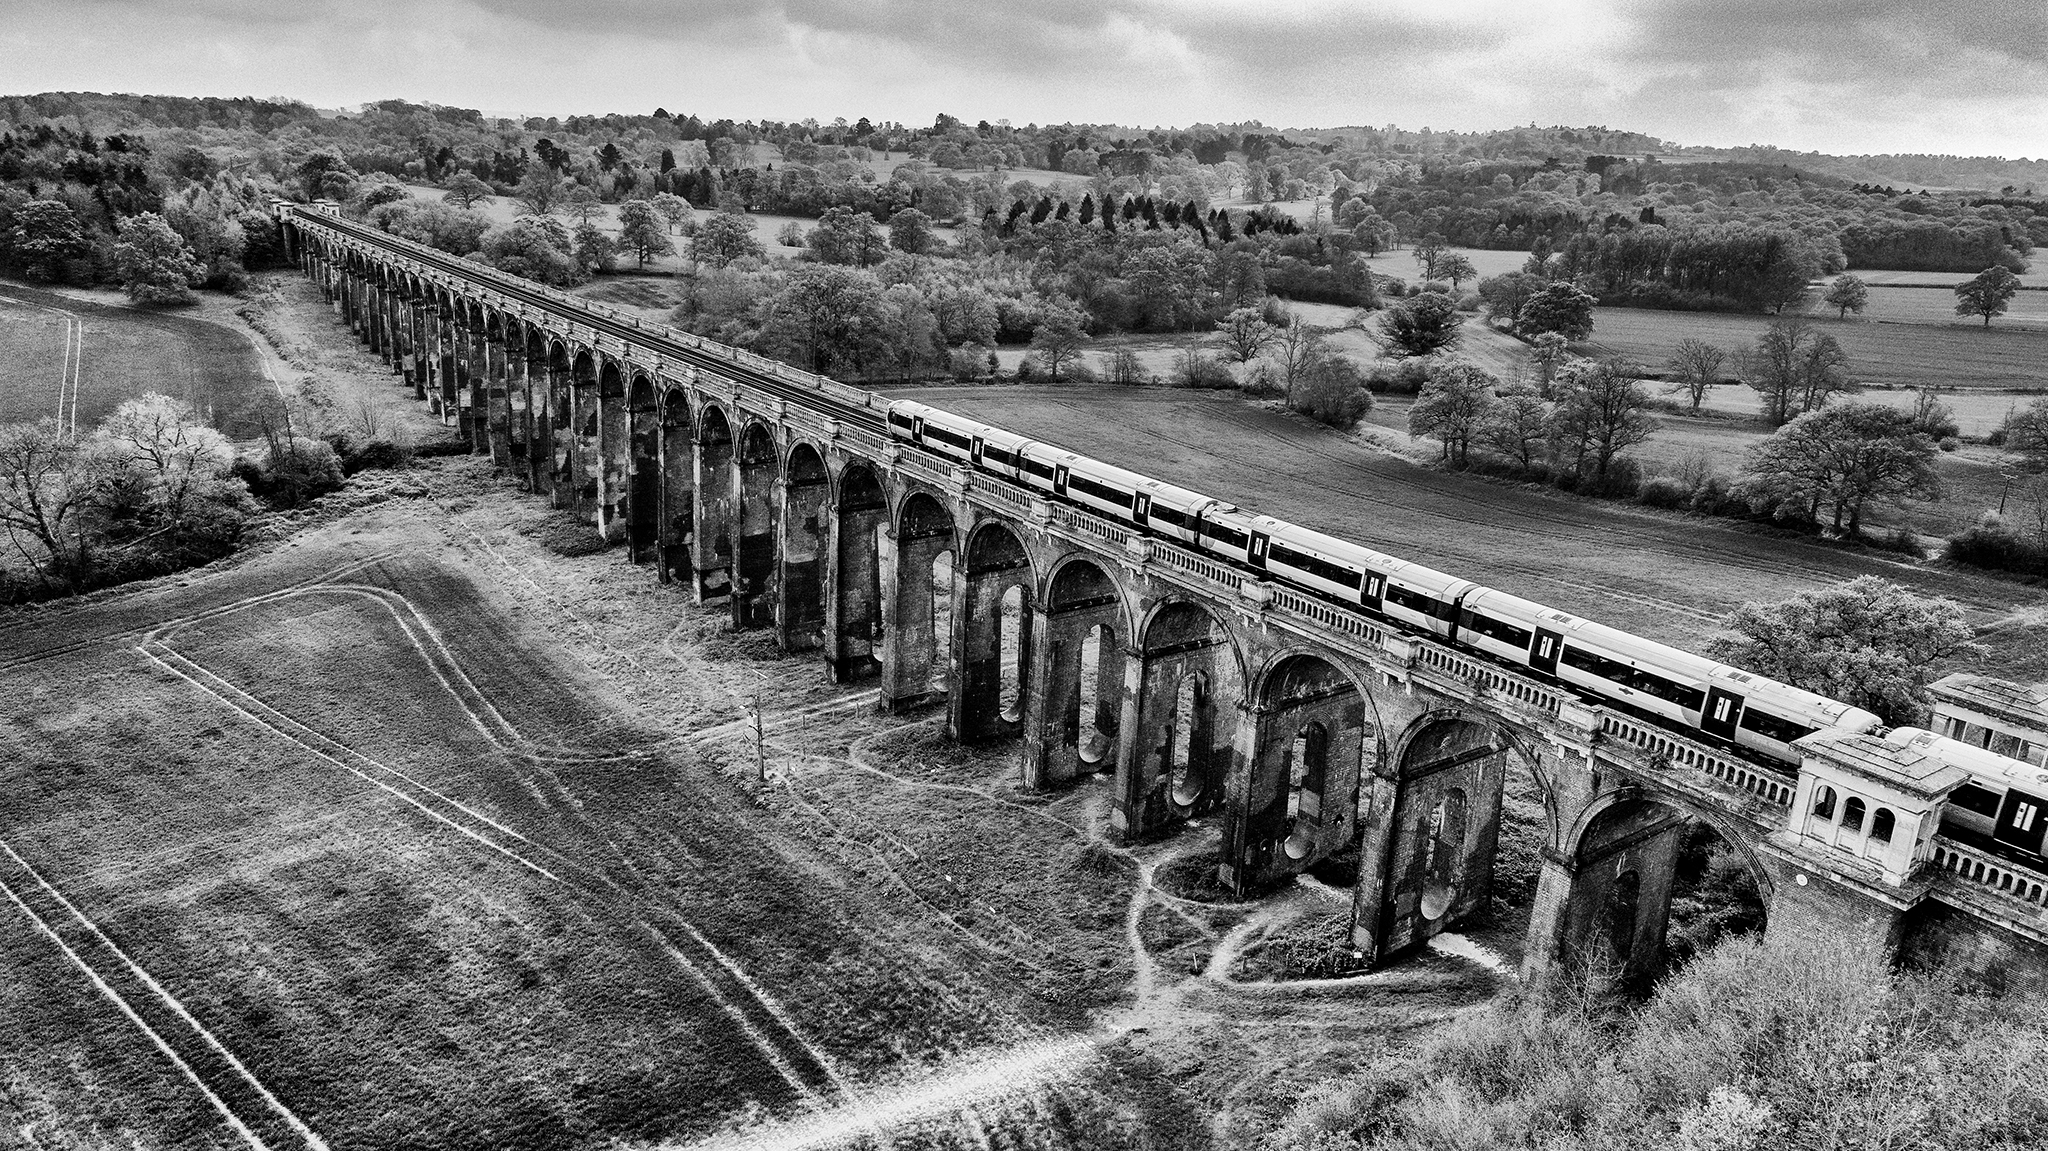 Ouse Valley Viaduct 1